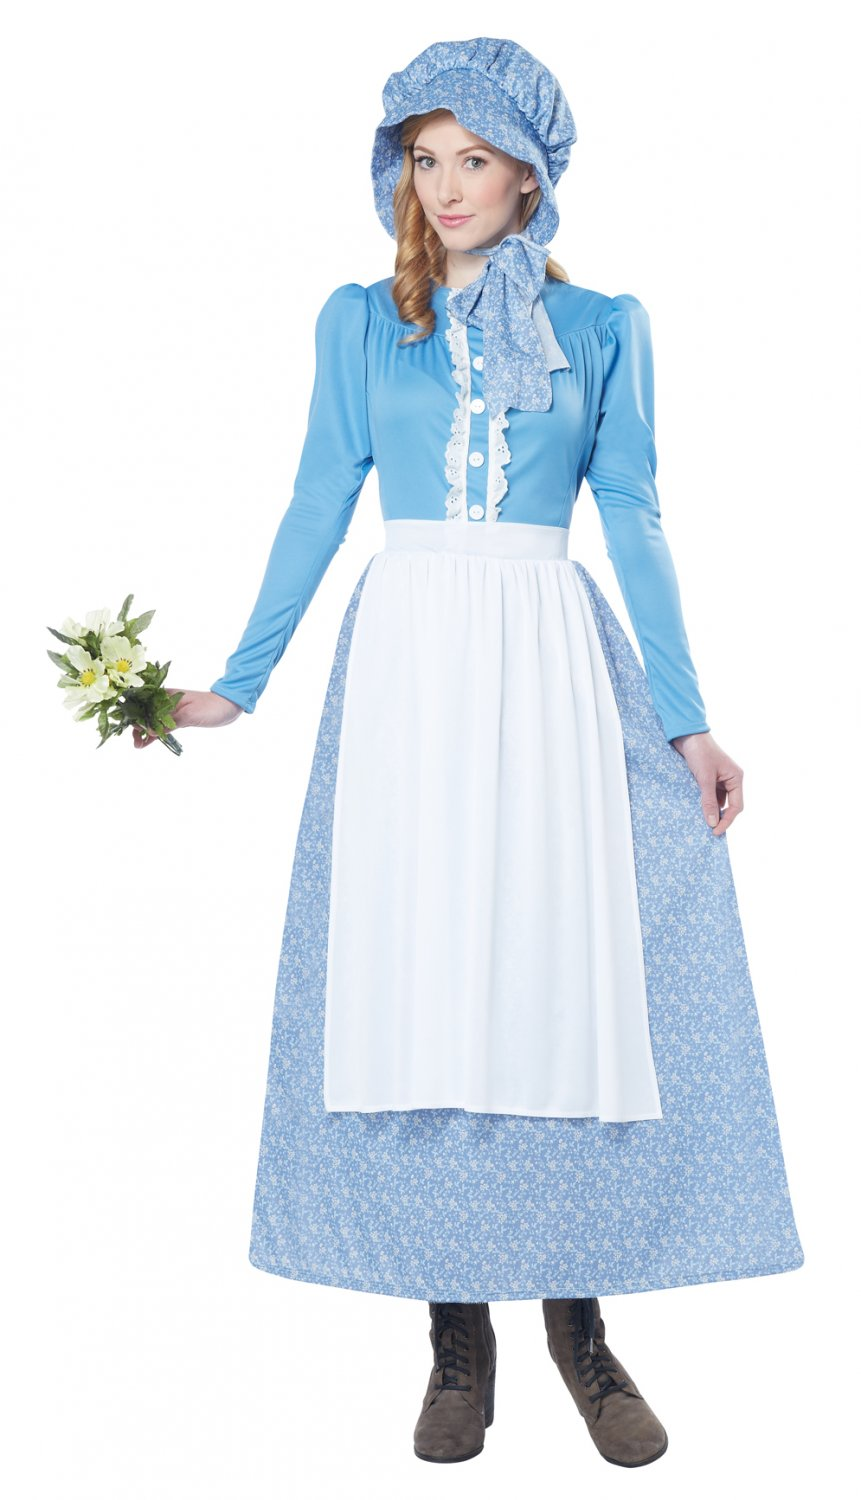 1800's  Cowboy Western Pioneer Woman Adult Costume Size: X-Small #01248